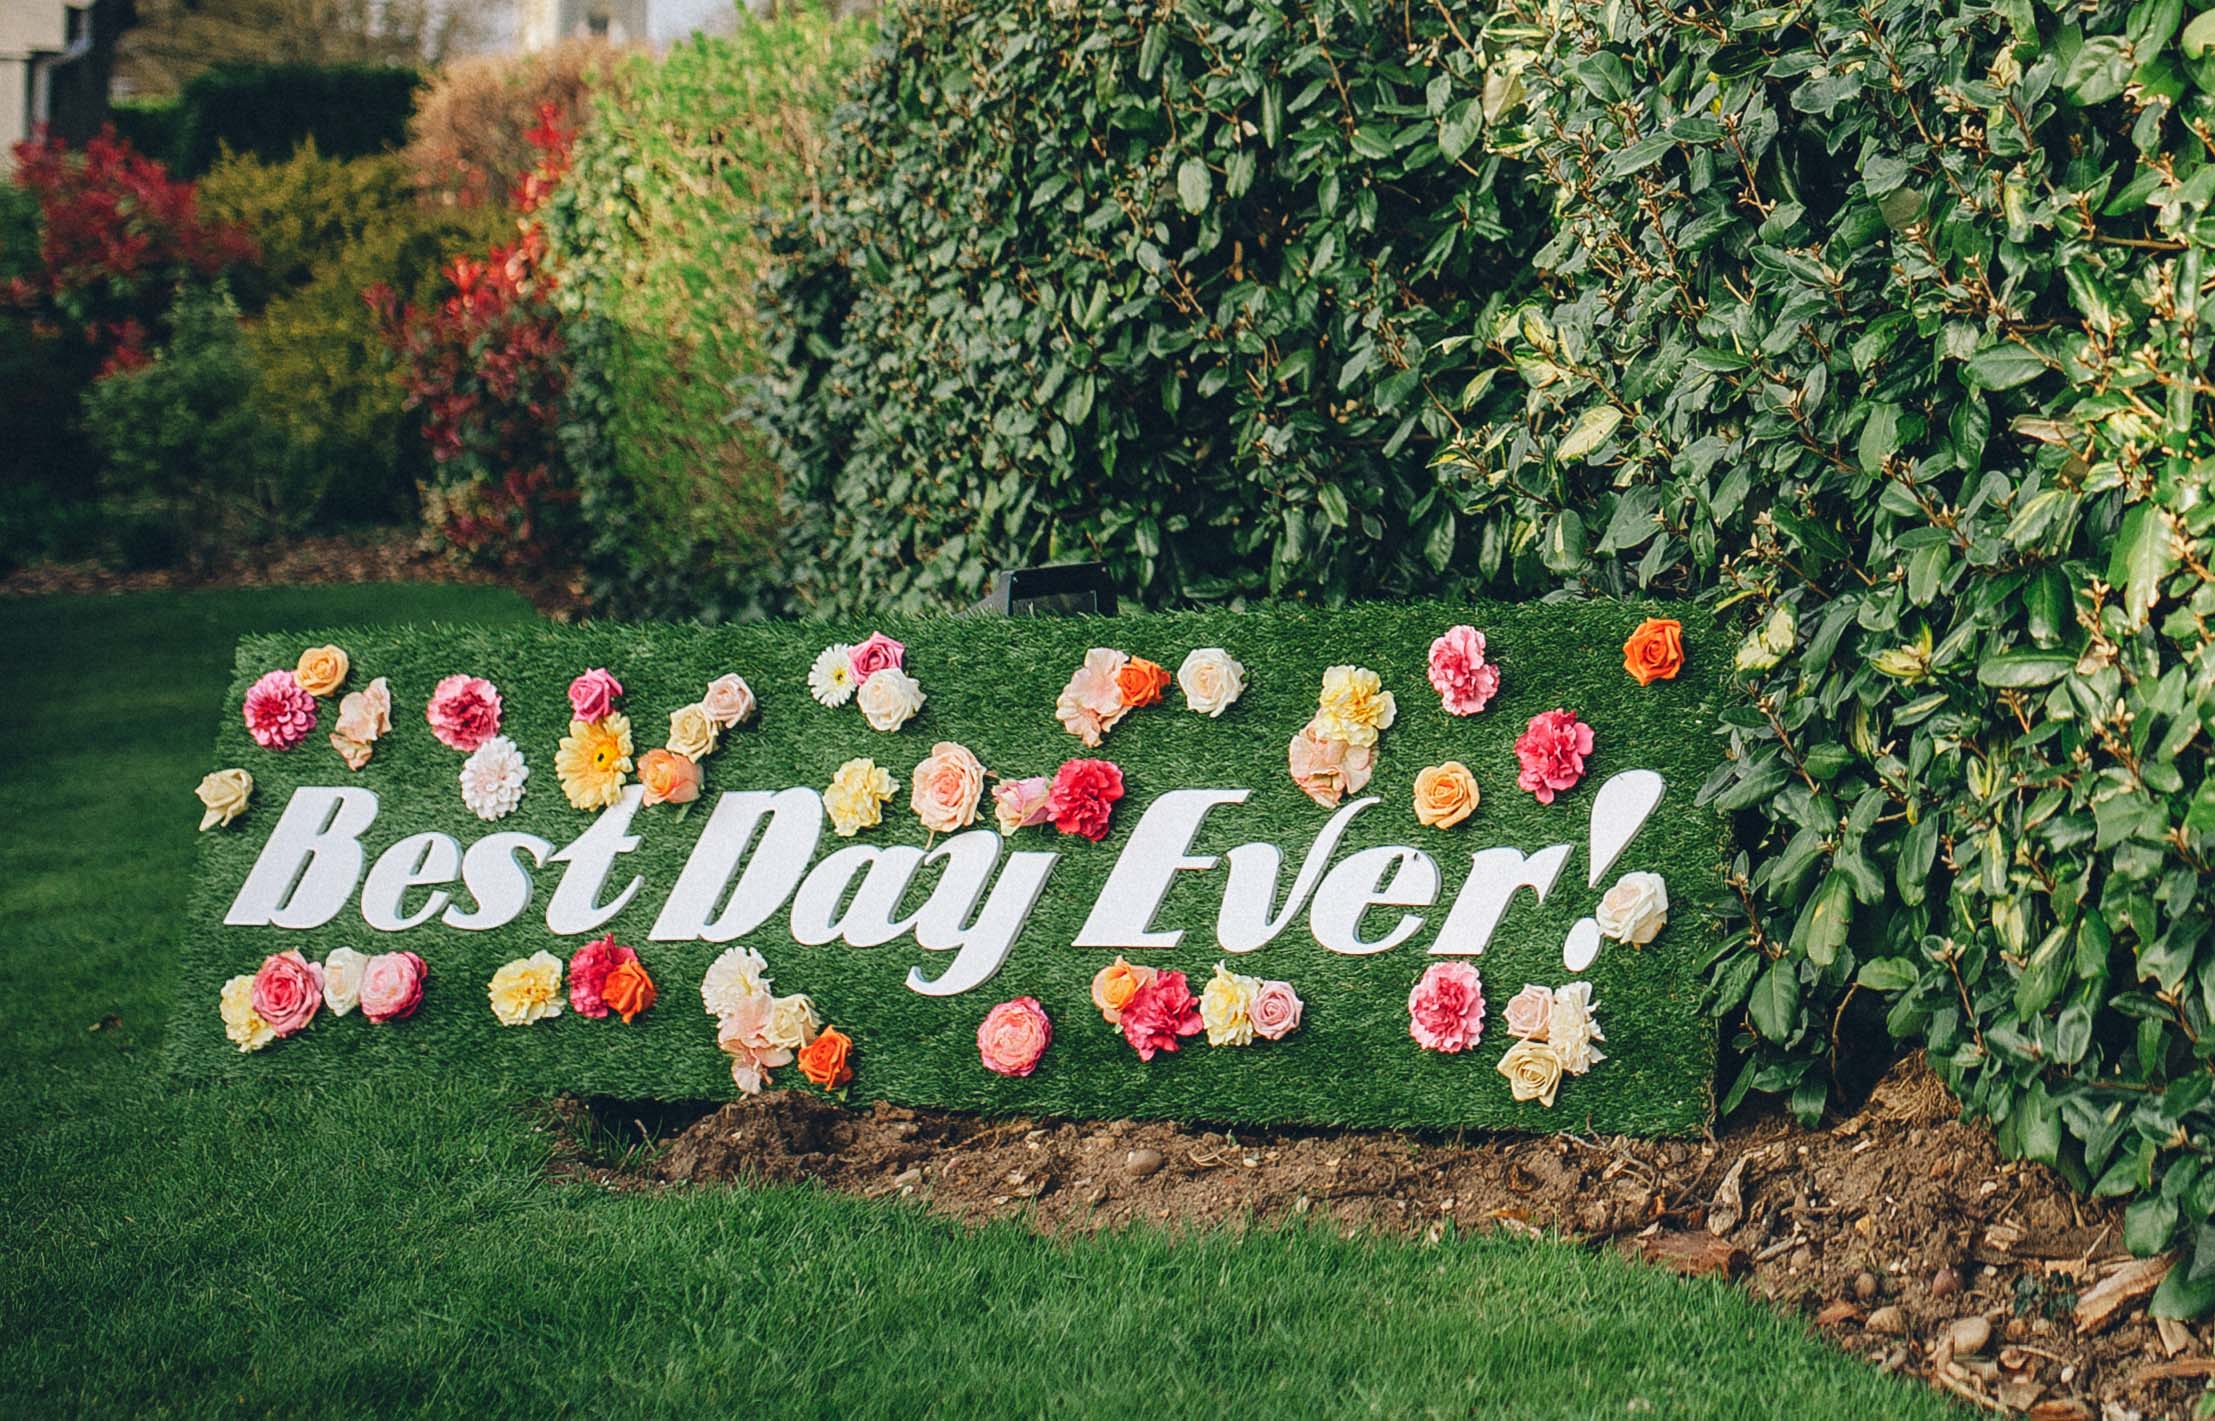 'Best Day Ever'